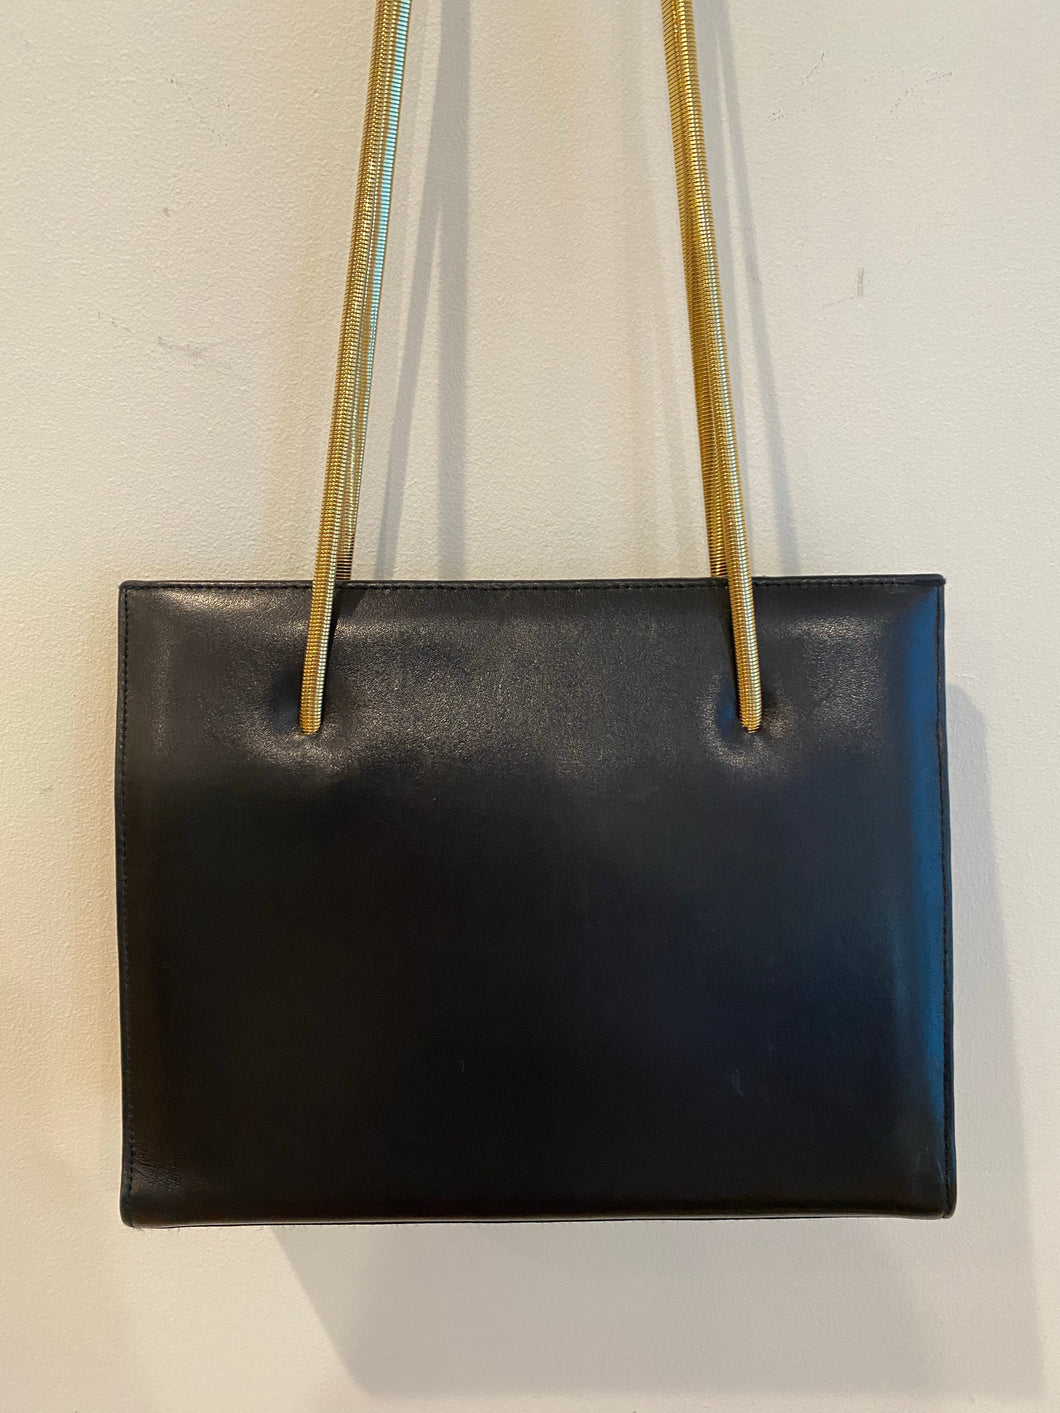 Black Leather Handbag with Gold Snakechain